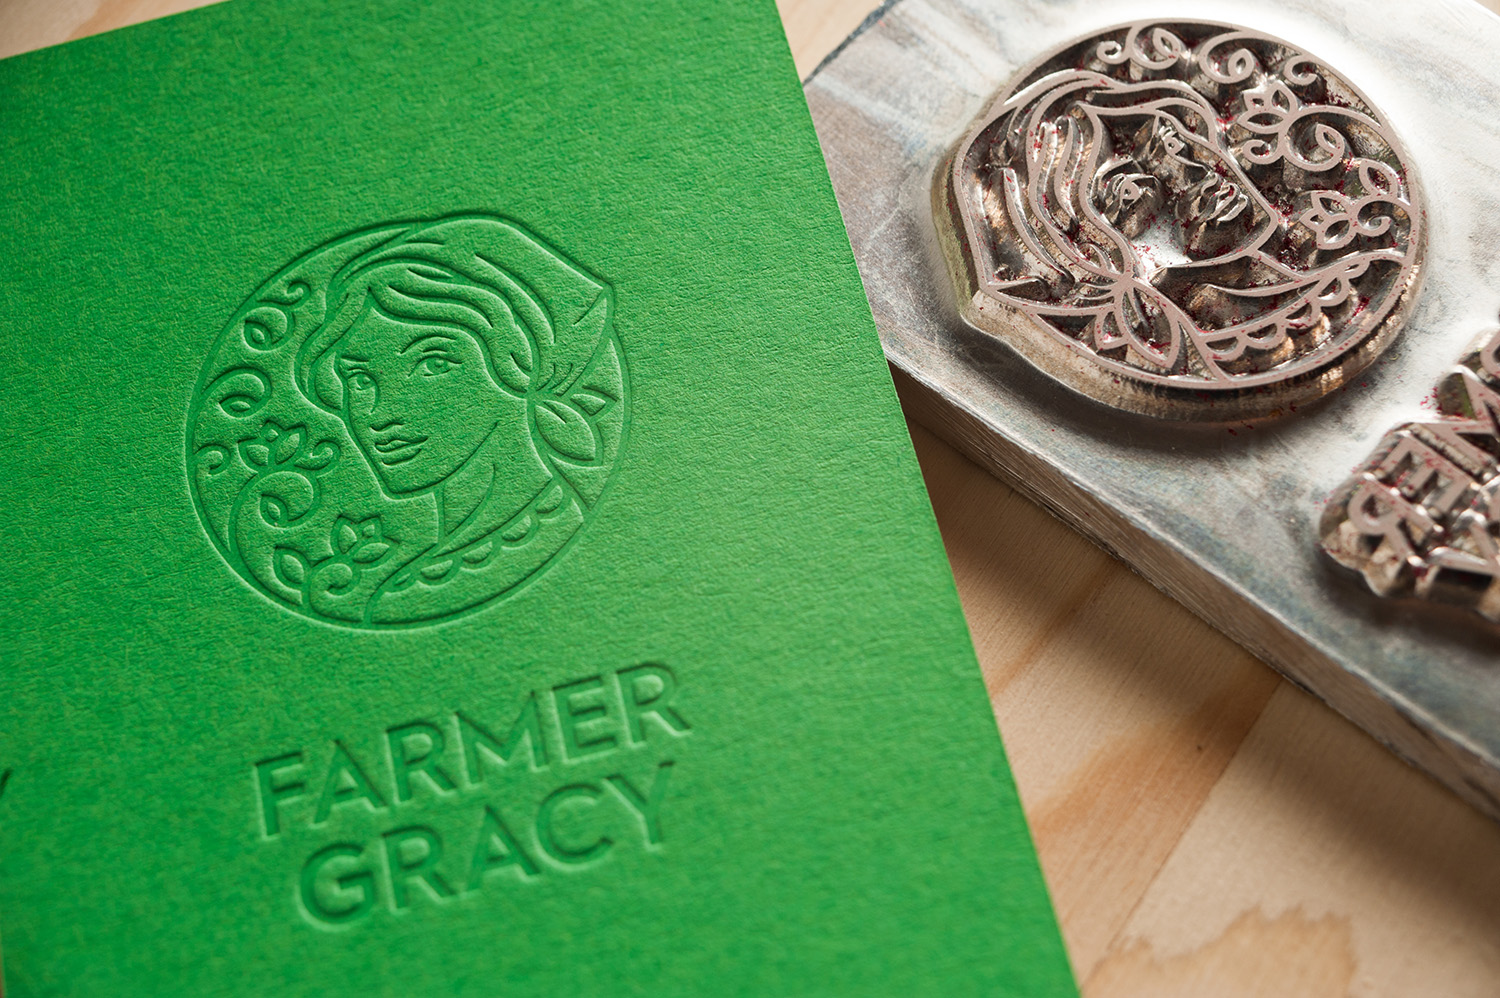 Farmer Gracy embossed card